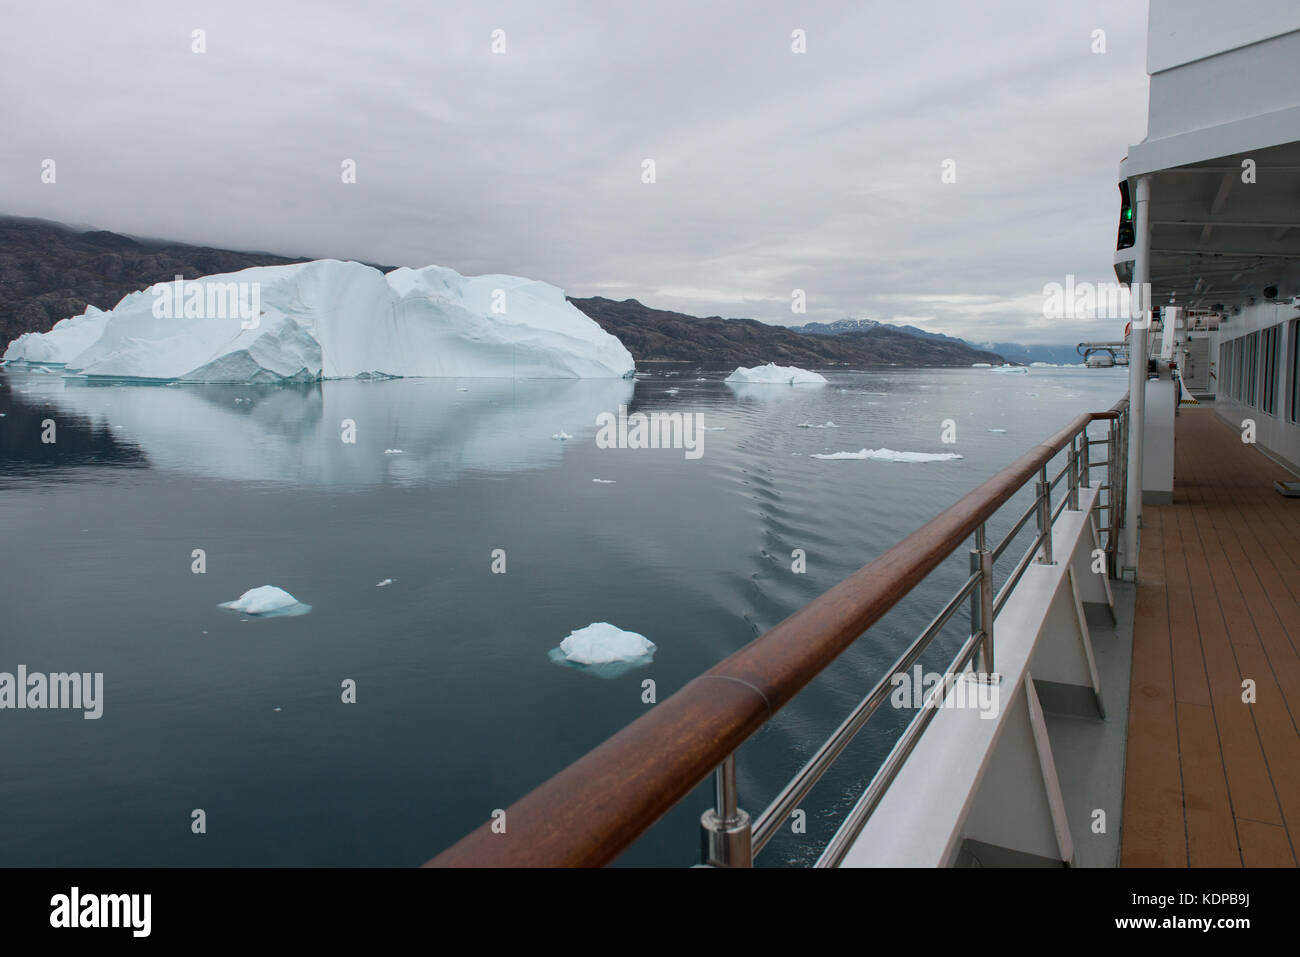 Arctic Expedition Stock Photos Amp Arctic Expedition Stock Images Alamy